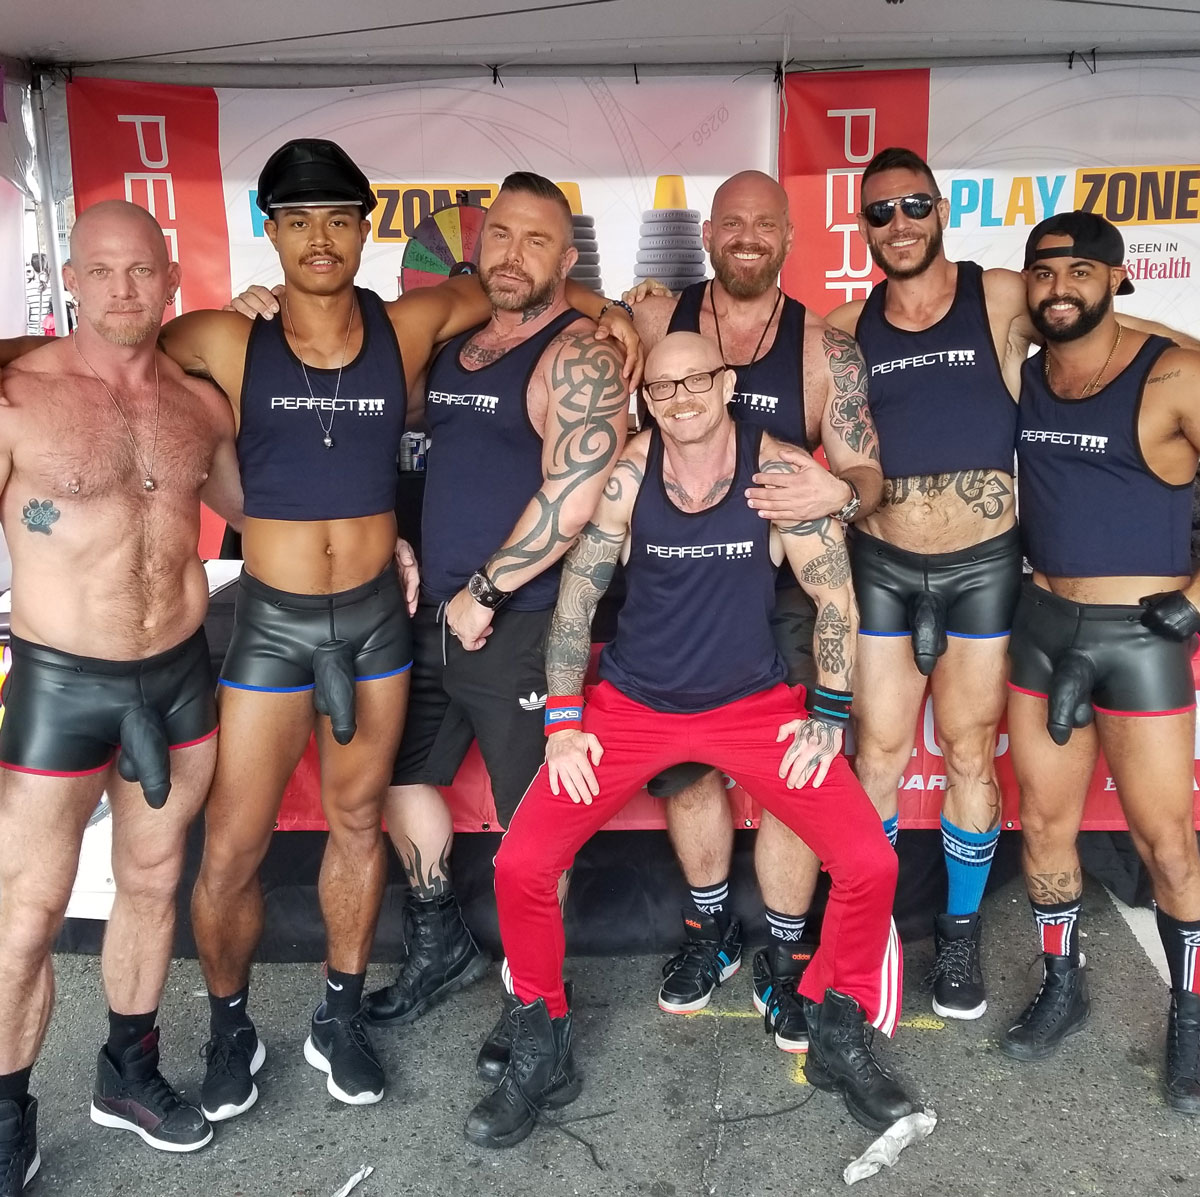 Perfect Fit Brand at the 2017 Folsom Street Fair